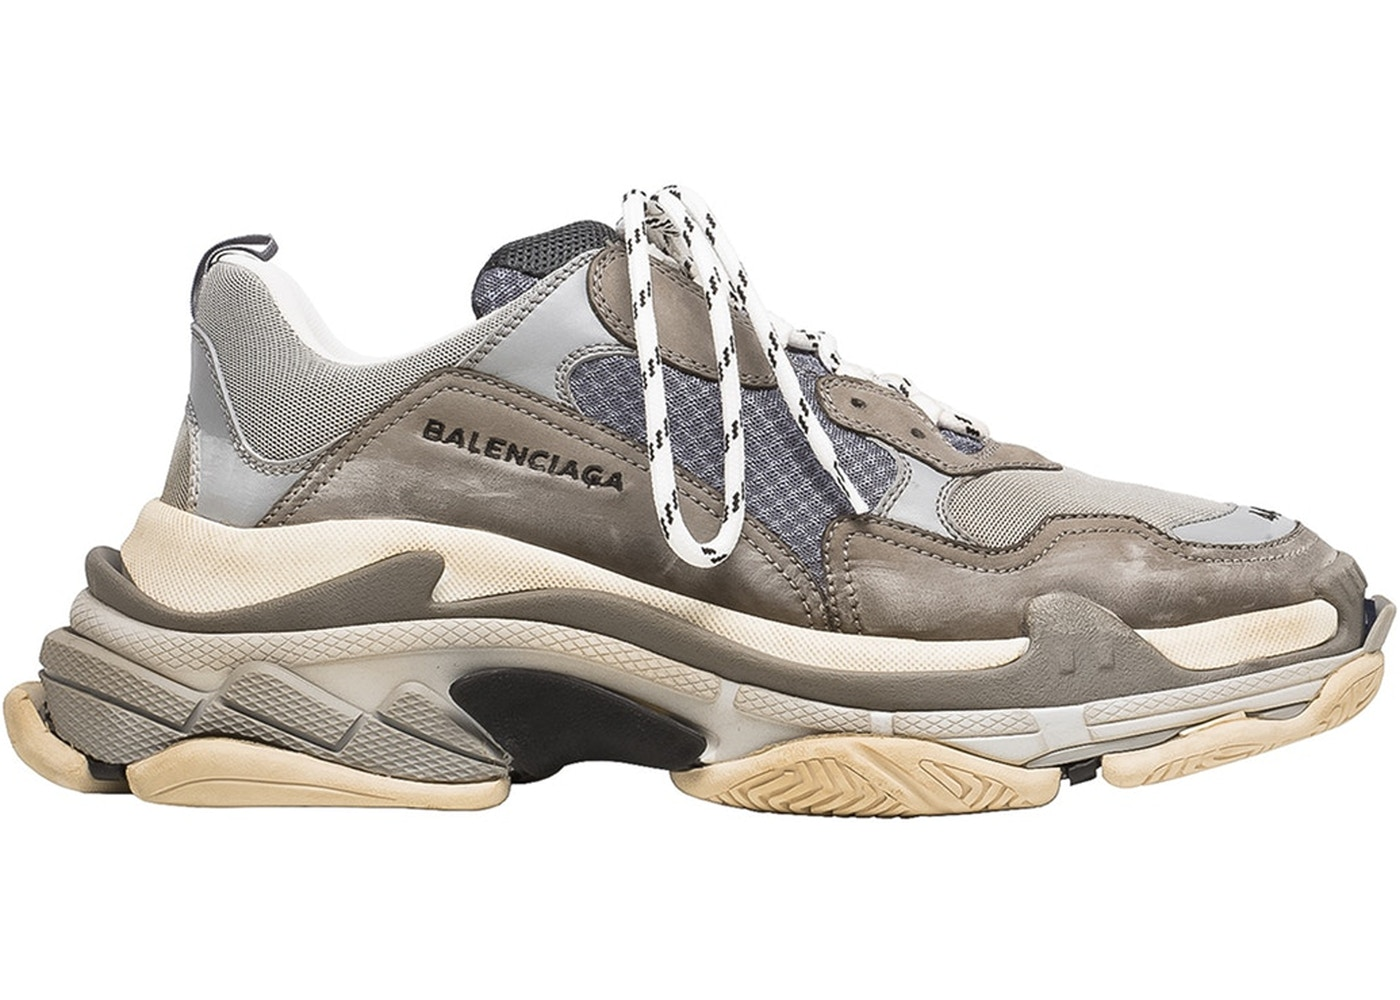 Discount Explore Balenciaga Triple S Sneakers - Grey Fast Delivery Online Quality Free Shipping Outlet Free Shipping Store Fast Delivery Cheap Price tWySX